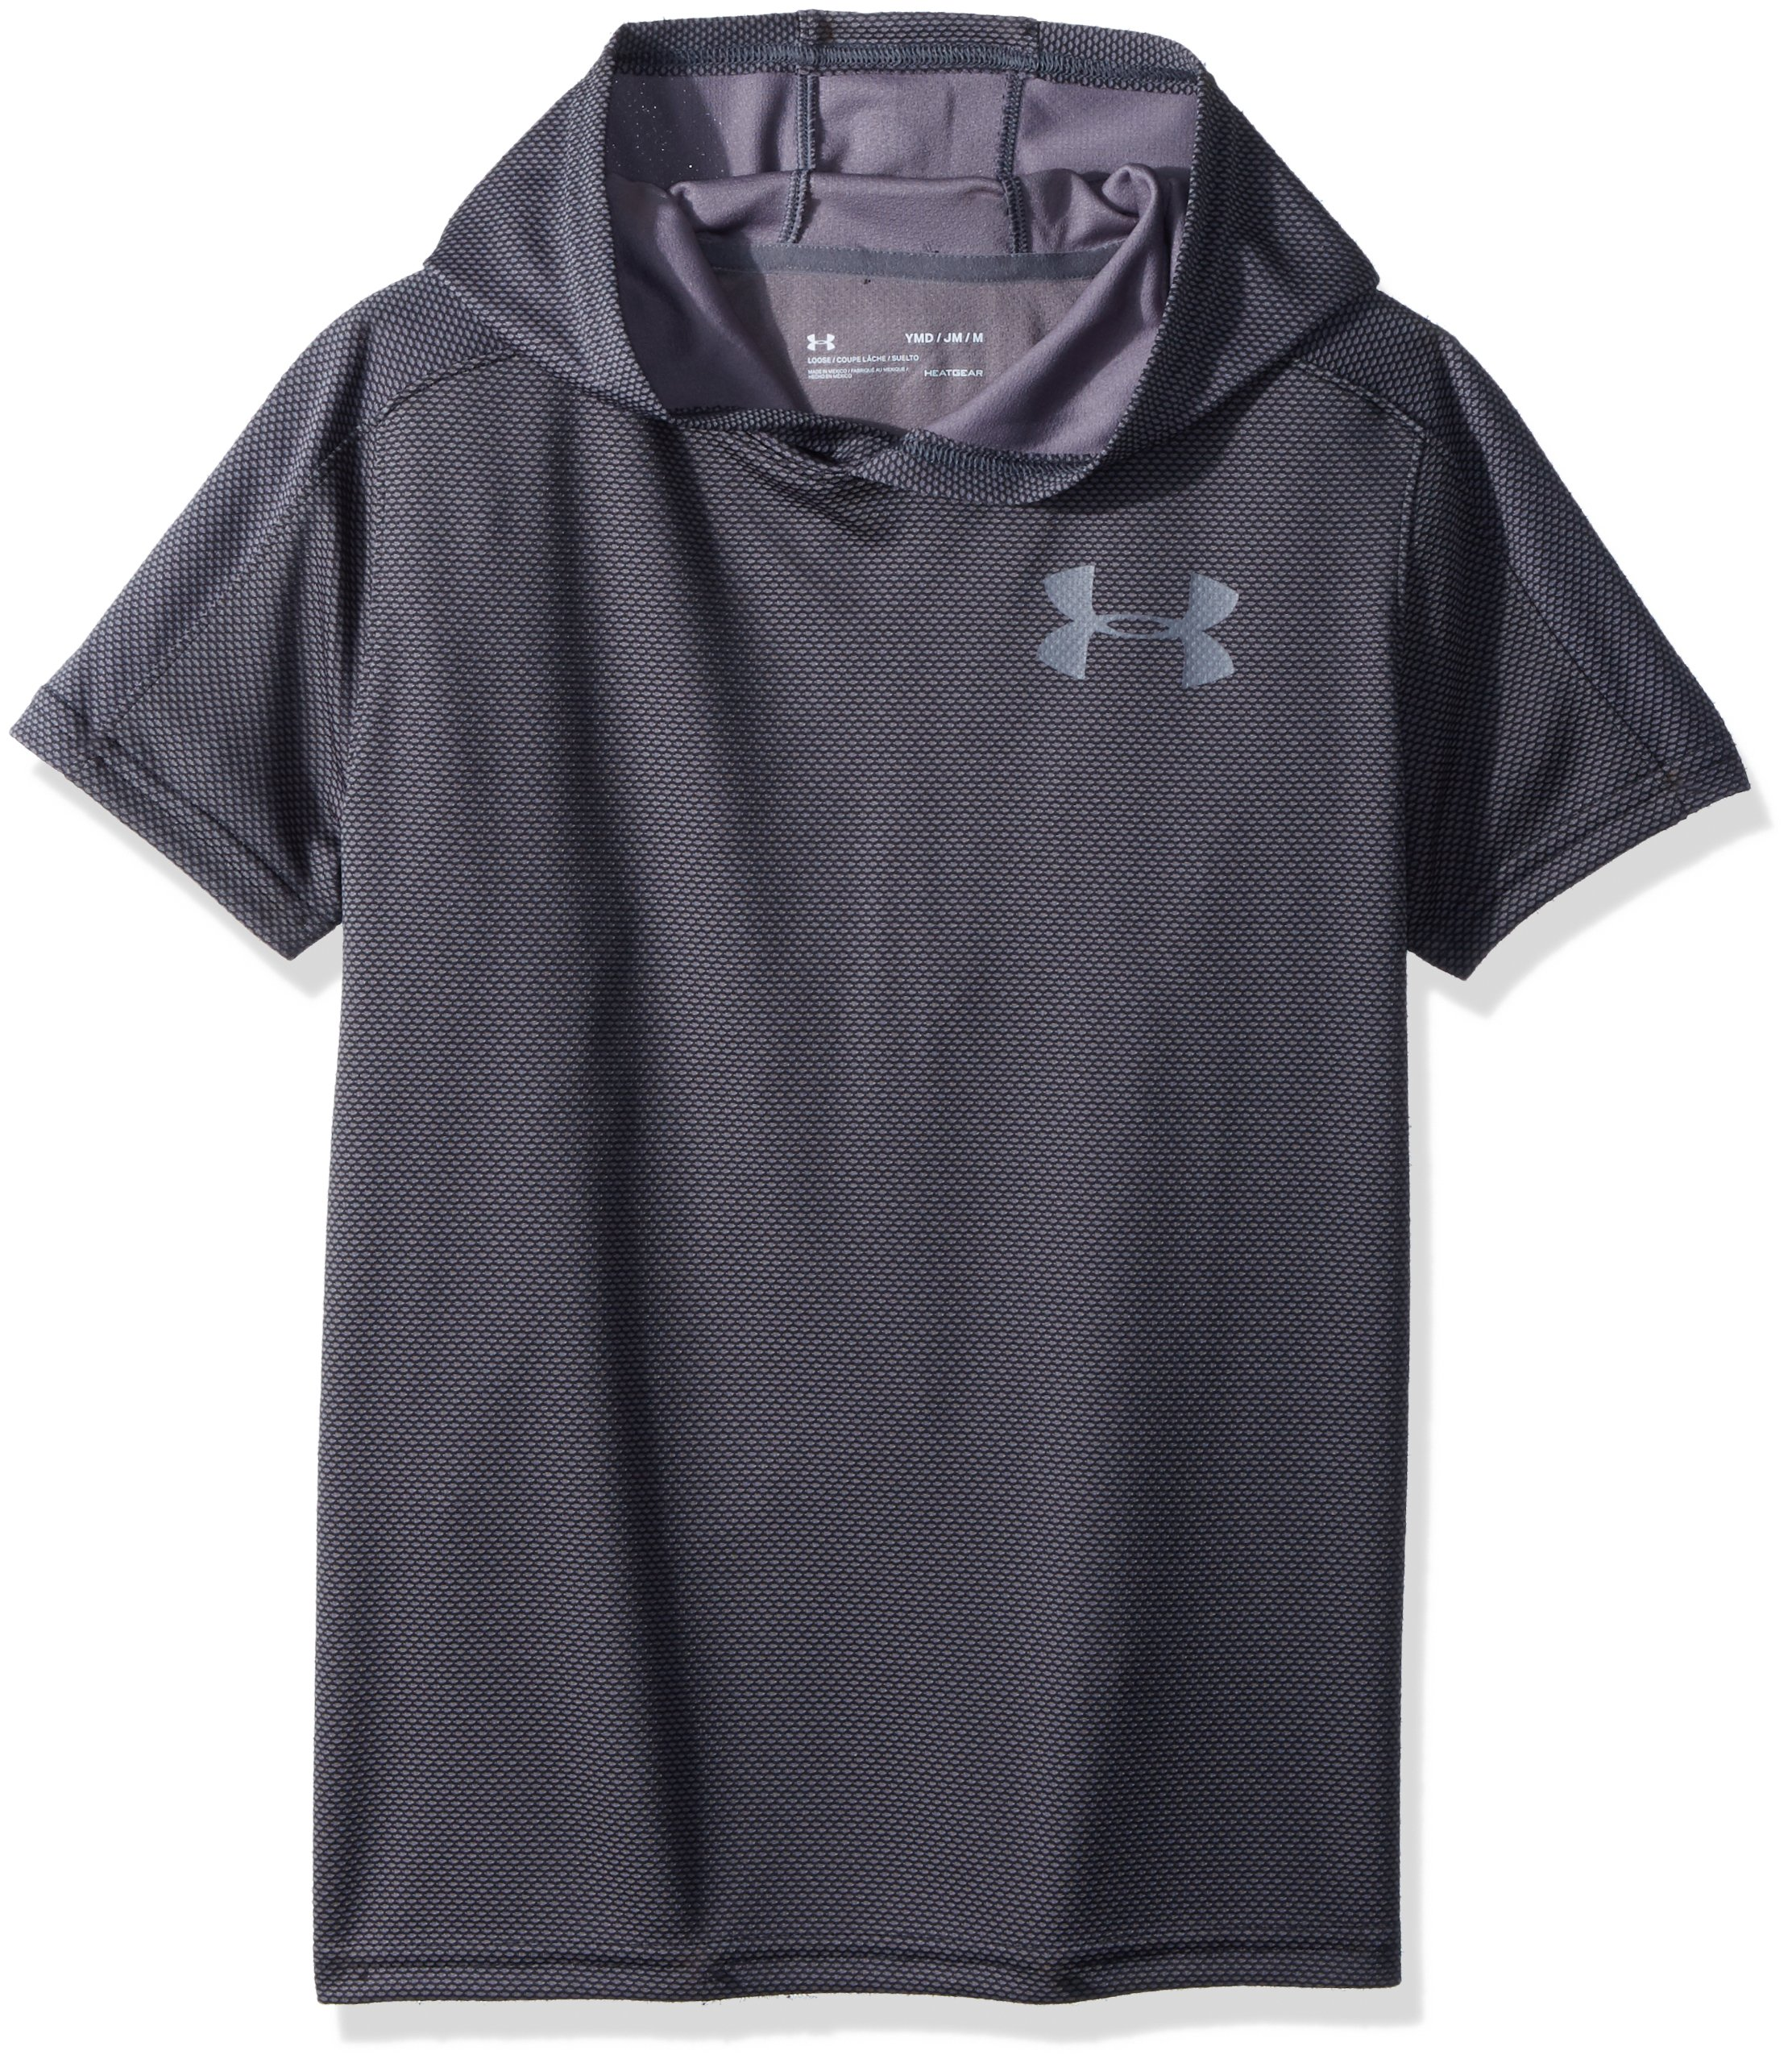 Under Armour Boys' Tech Textured Short Sleeve Hoodie, Black (001)/Graphite, Youth Medium by Under Armour